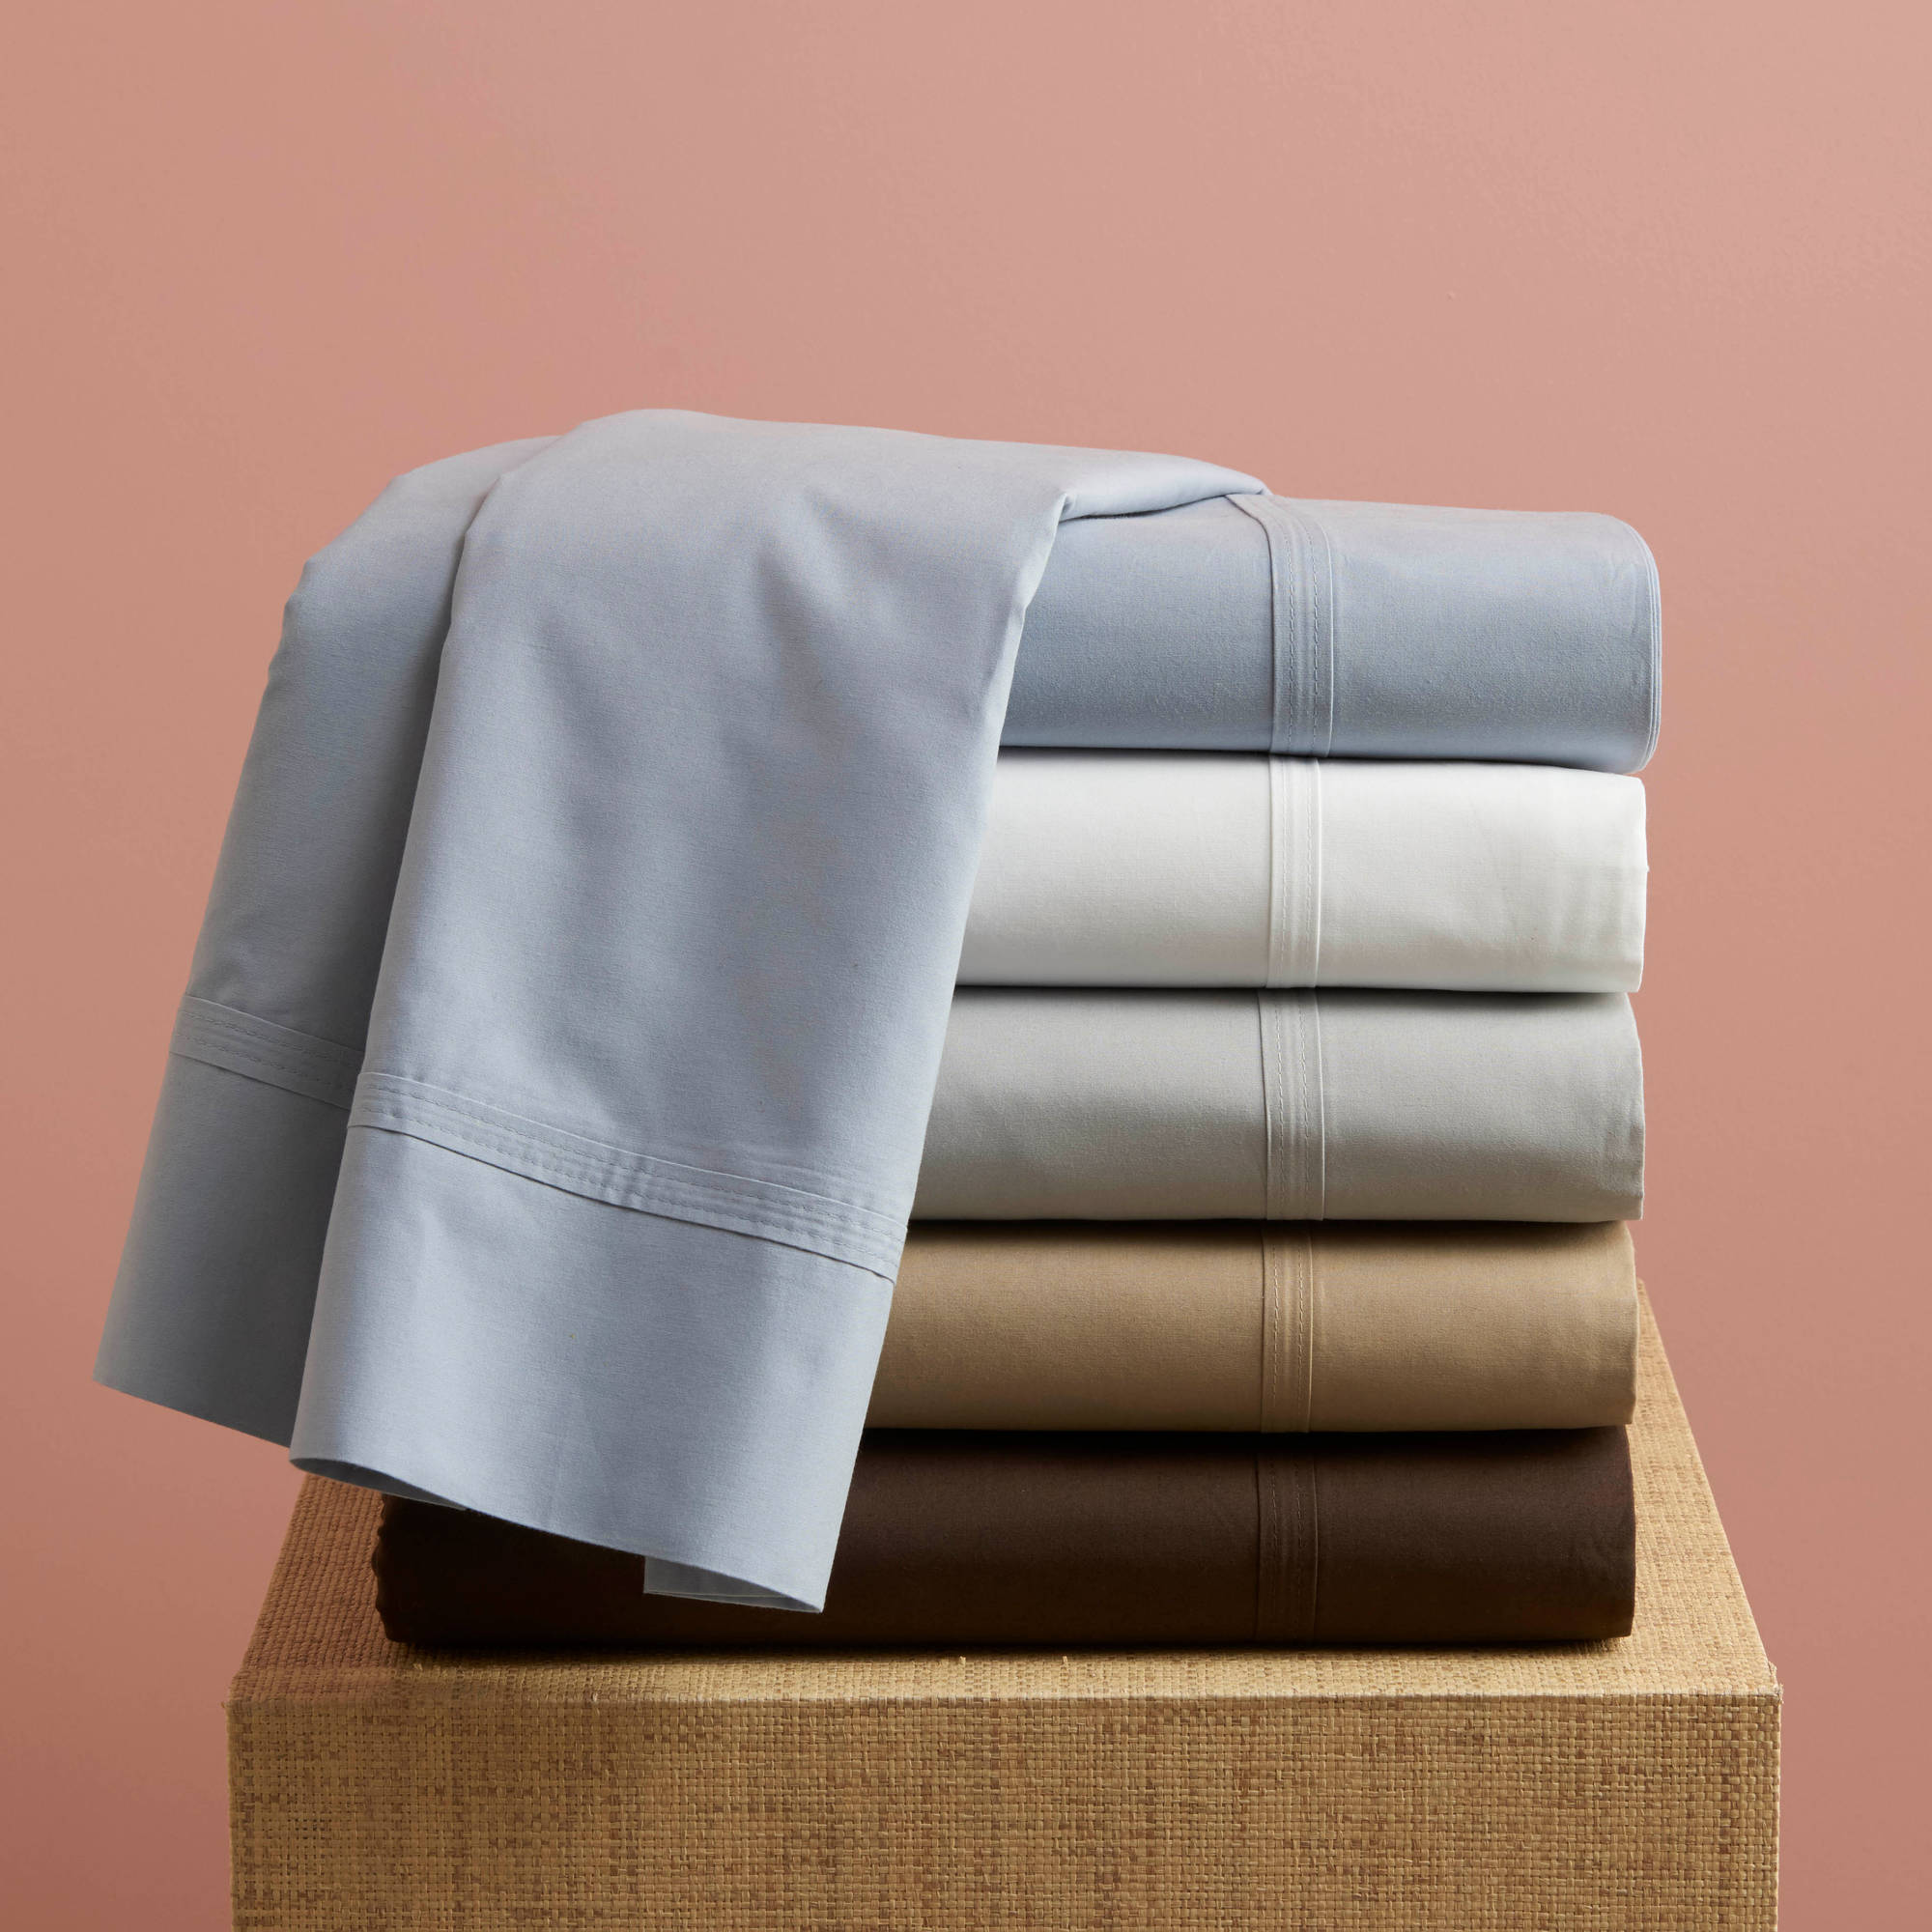 Great Better Homes And Gardens 350 Thread Count Hygro Cotton Percale Sheet  Collection Pillowcase   Walmart.com